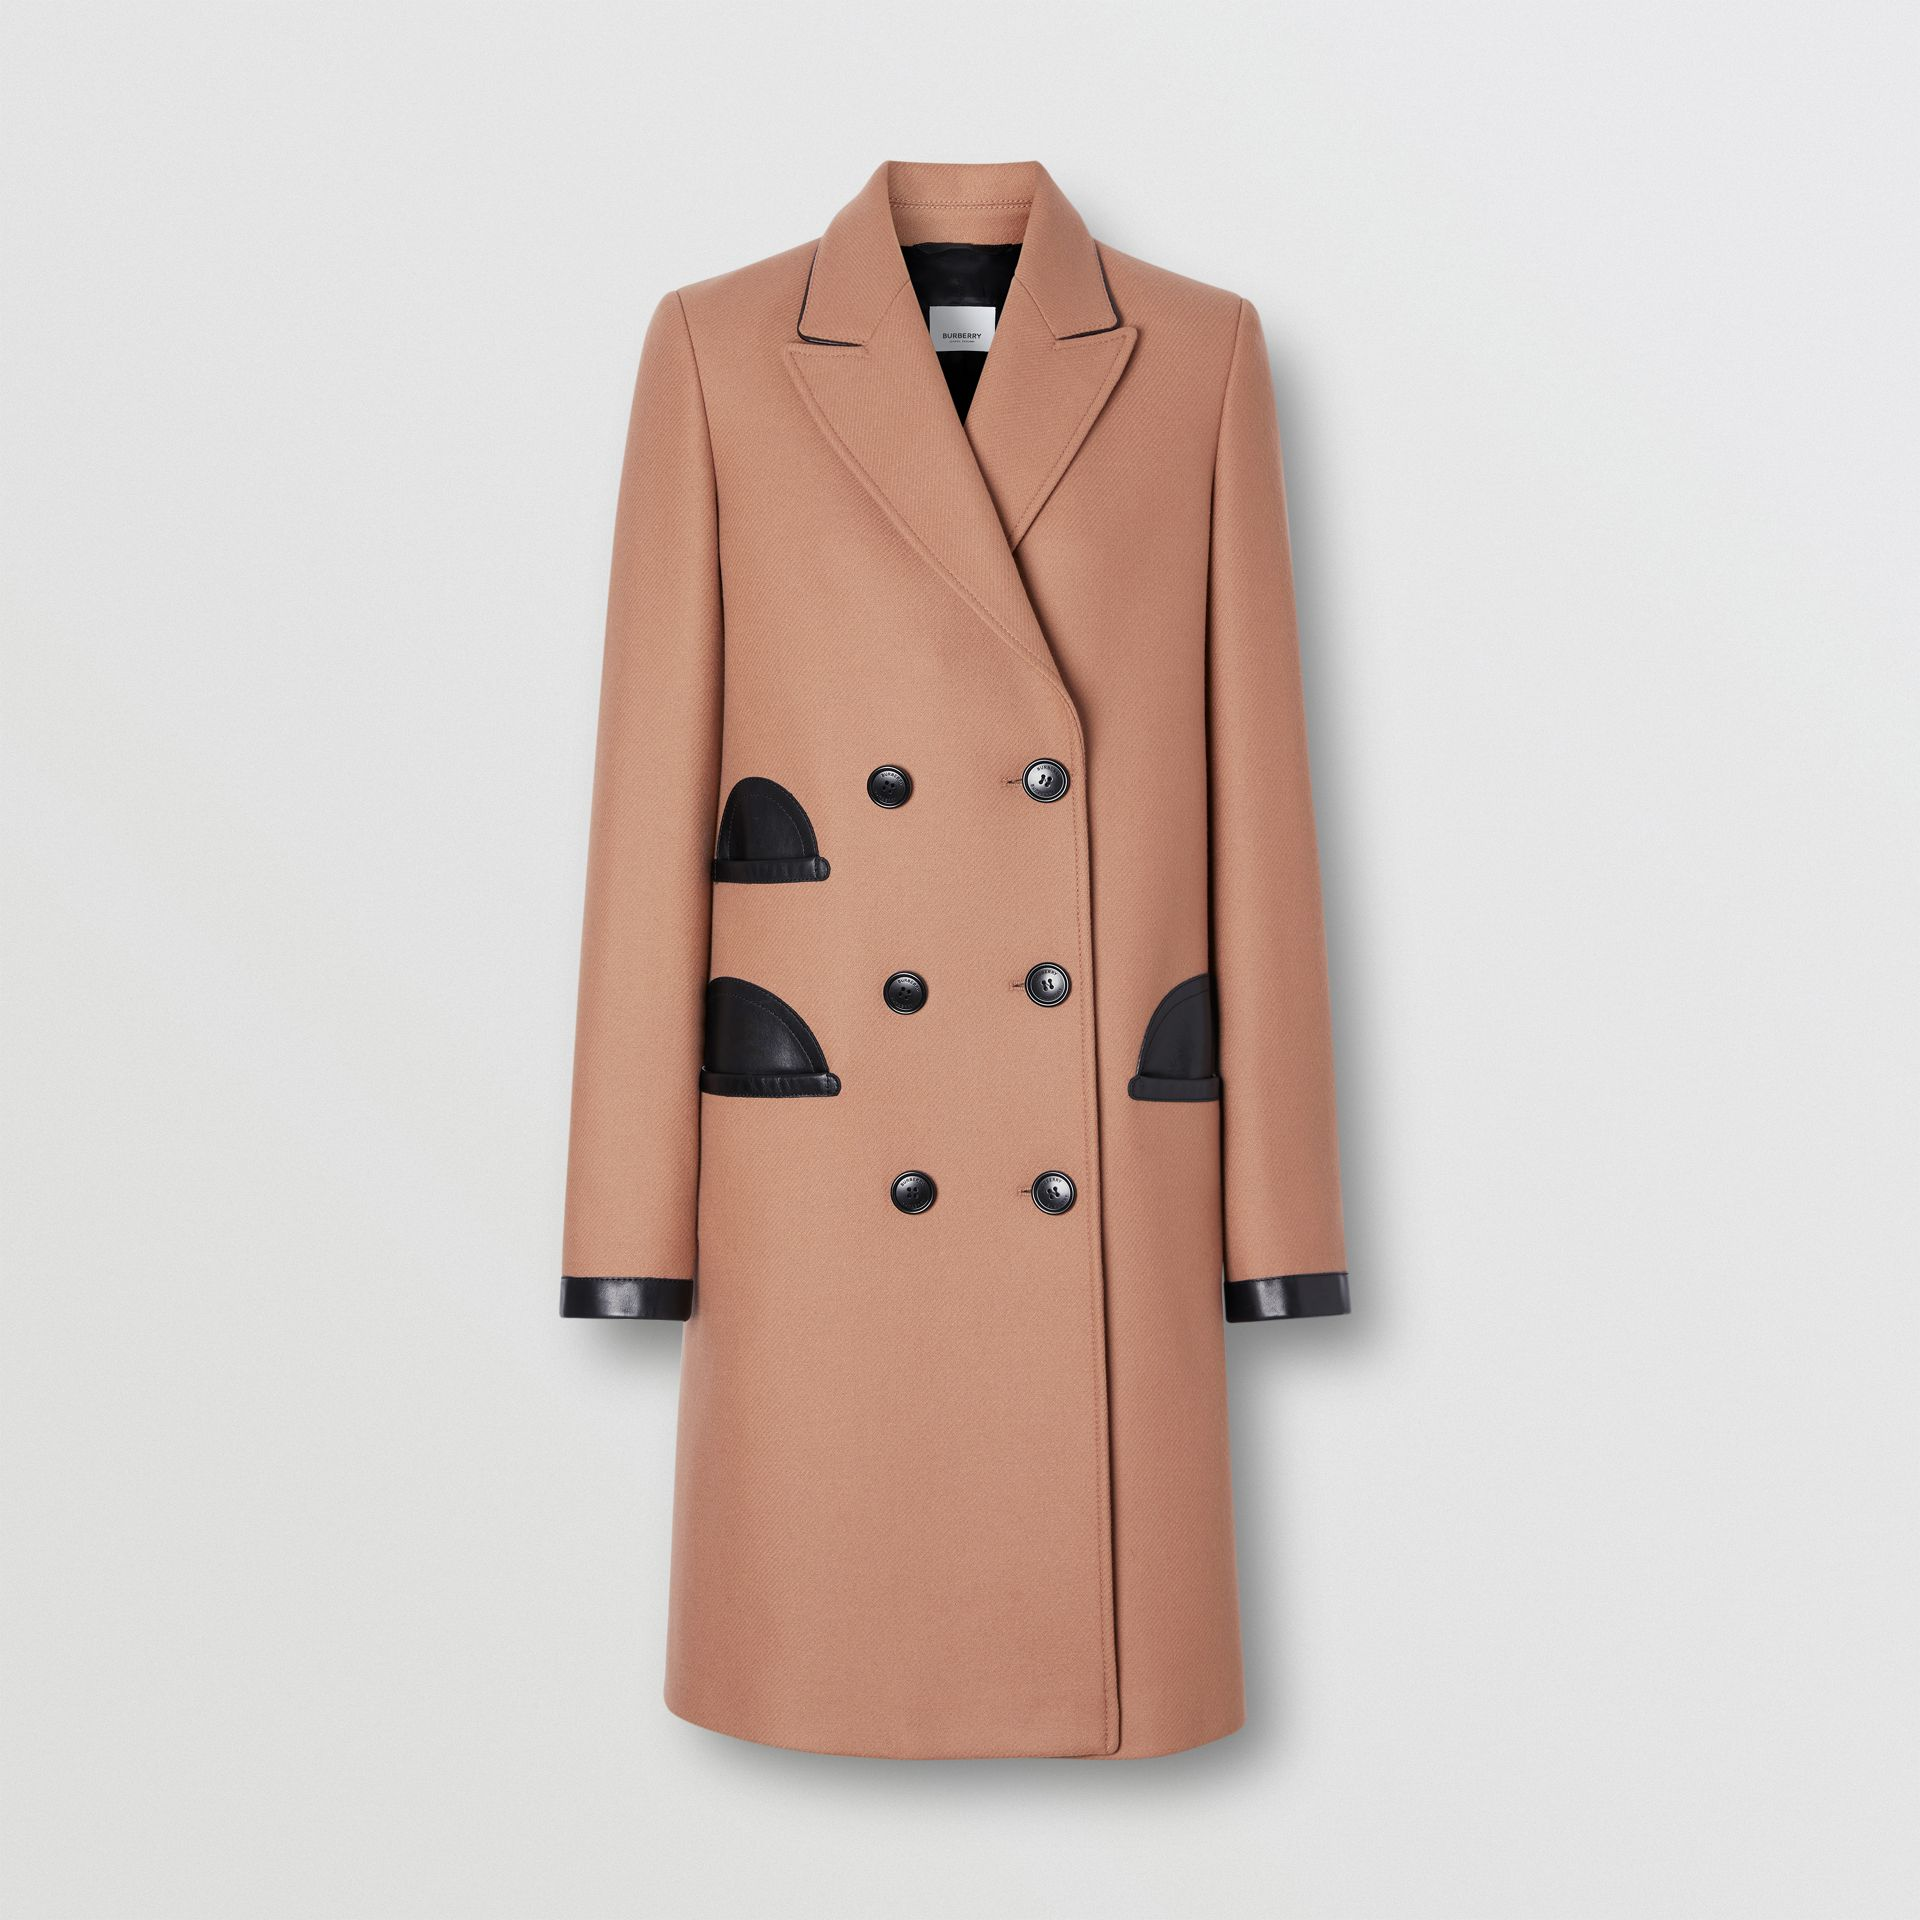 Lambskin Trim Wool Cashmere Blend Tailored Coat in Camel - Women | Burberry United Kingdom - gallery image 3